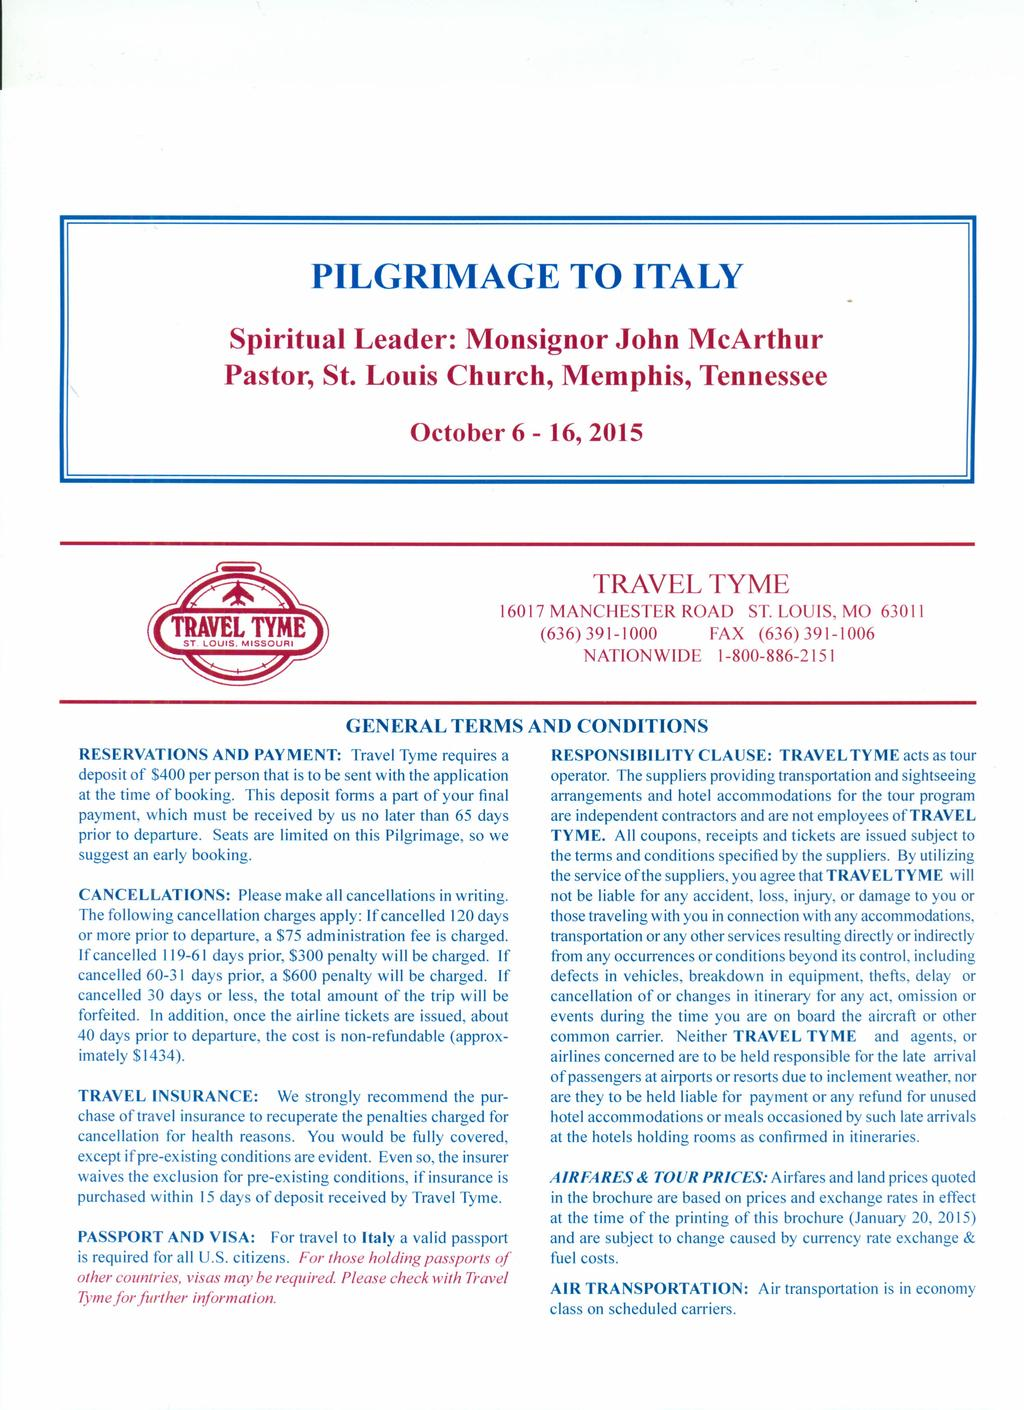 PILGRIMAGE TO ITALY Spiritual Leader: Monsignor John McArthur Pastor, St. Louis Church, Memphis, Tennessee October 6-16, 2015 TRAVEL TYME 16017 MANCHESTER ROAD ST.